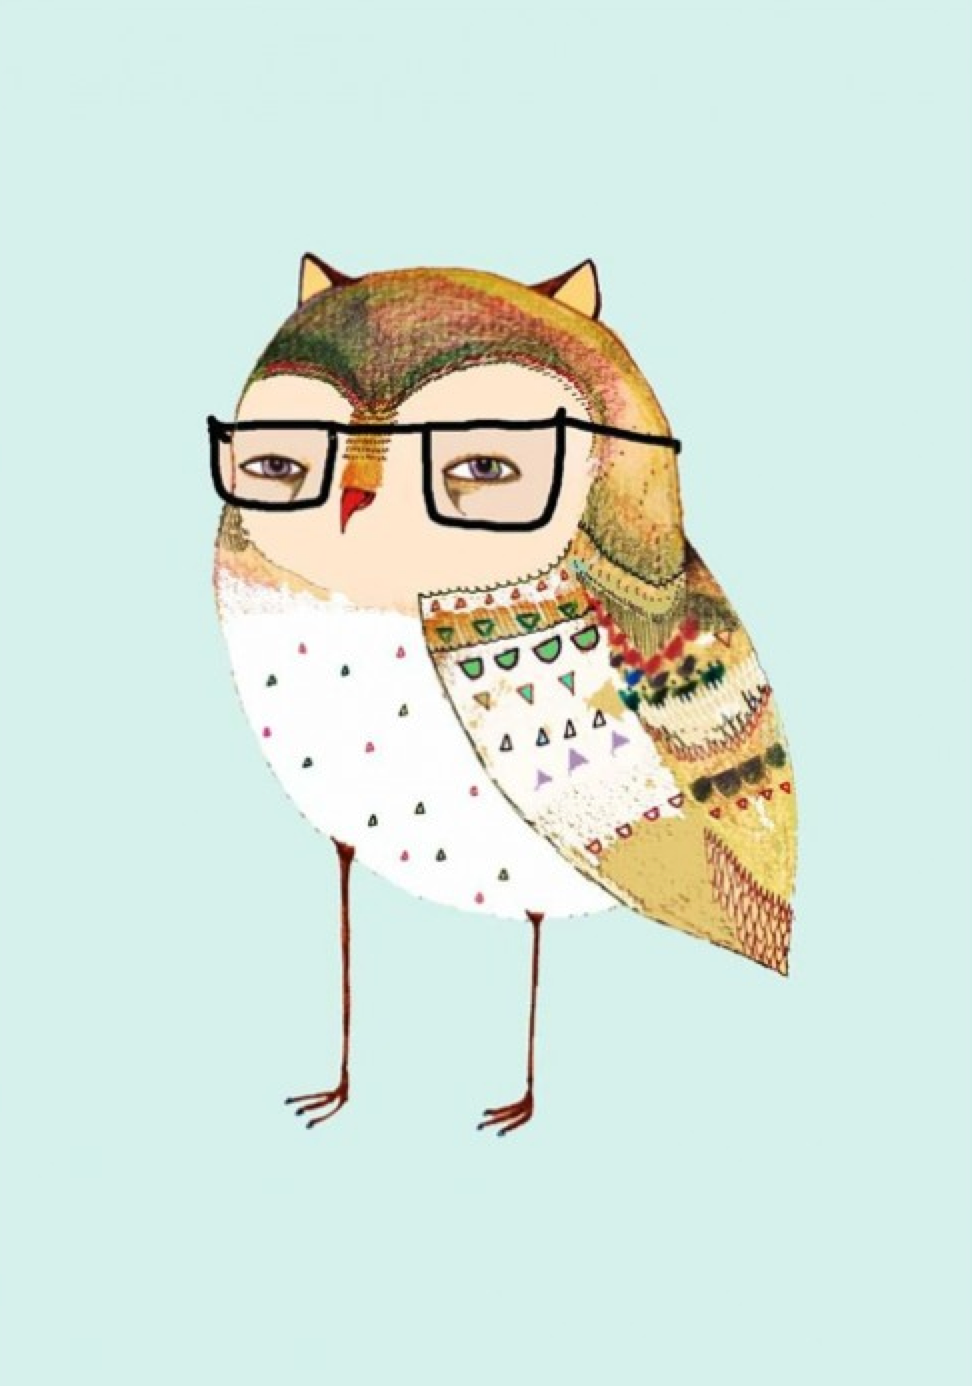 http://www.designstuff.com.au/wall-art/posters-children-s-room/ashley-percival-little-owl-wearing-glasses-a3.html